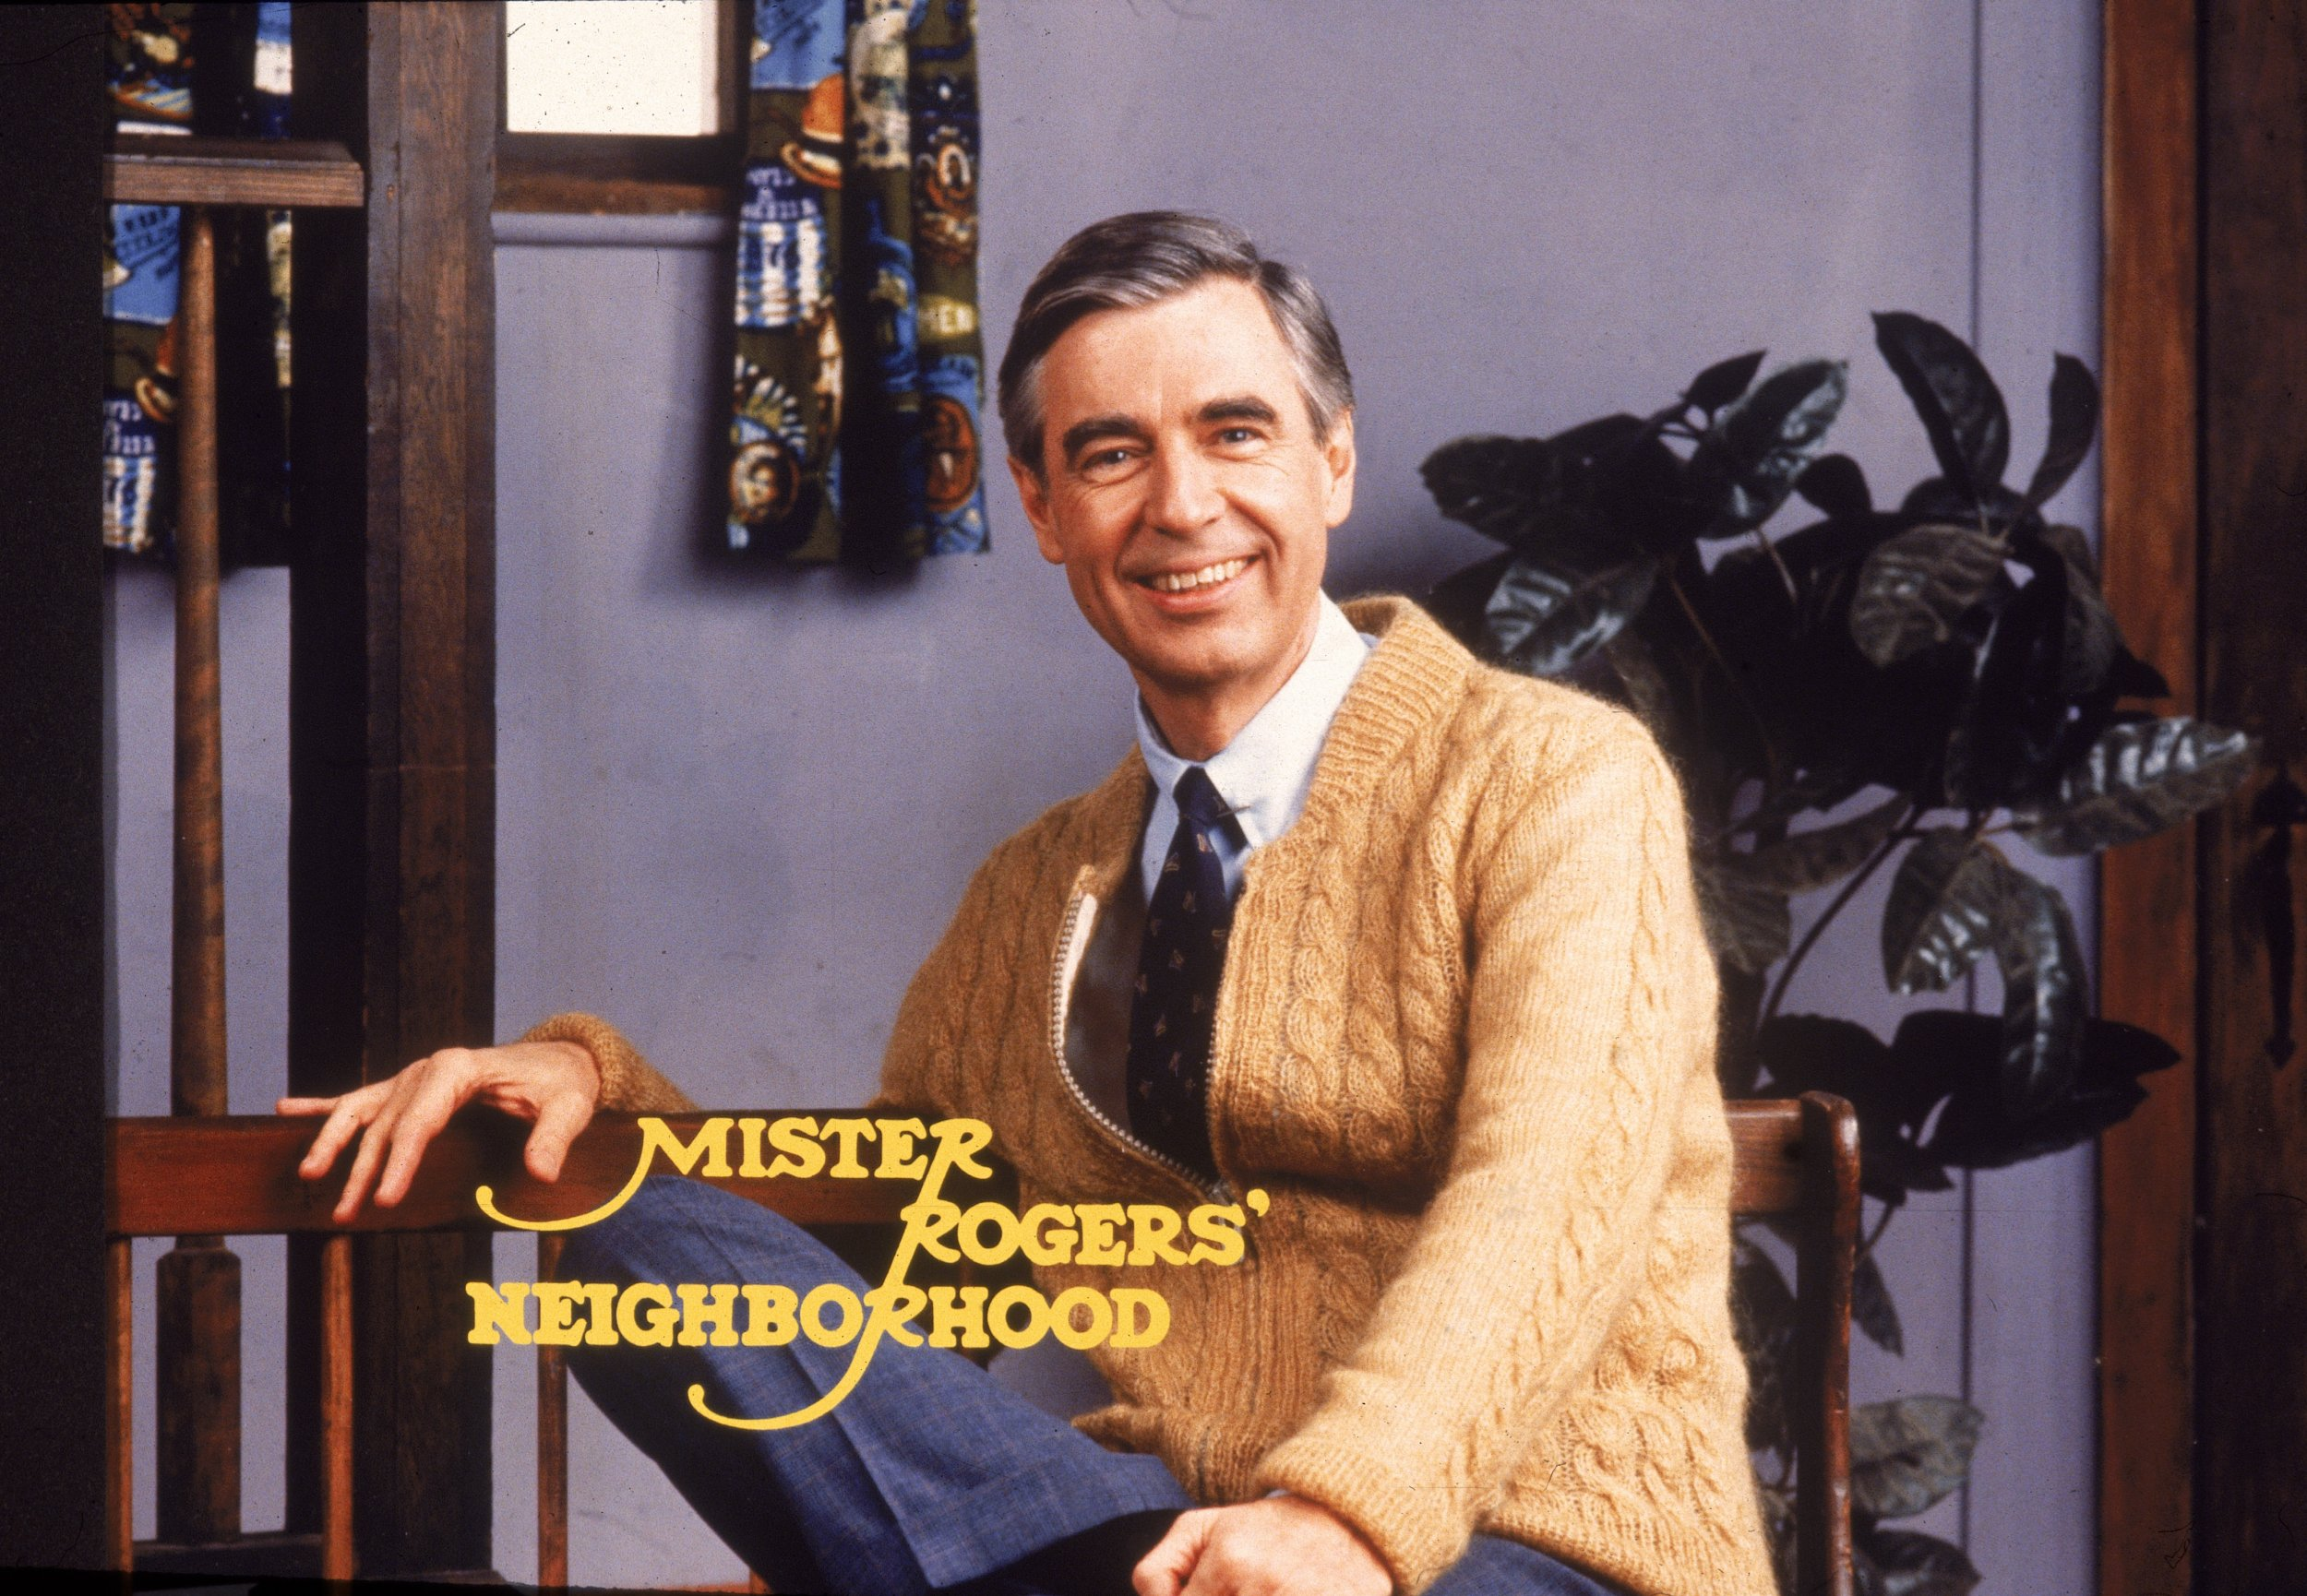 Mr Rogers Quotes Wisdom From The Children S Television Host On His Birthday